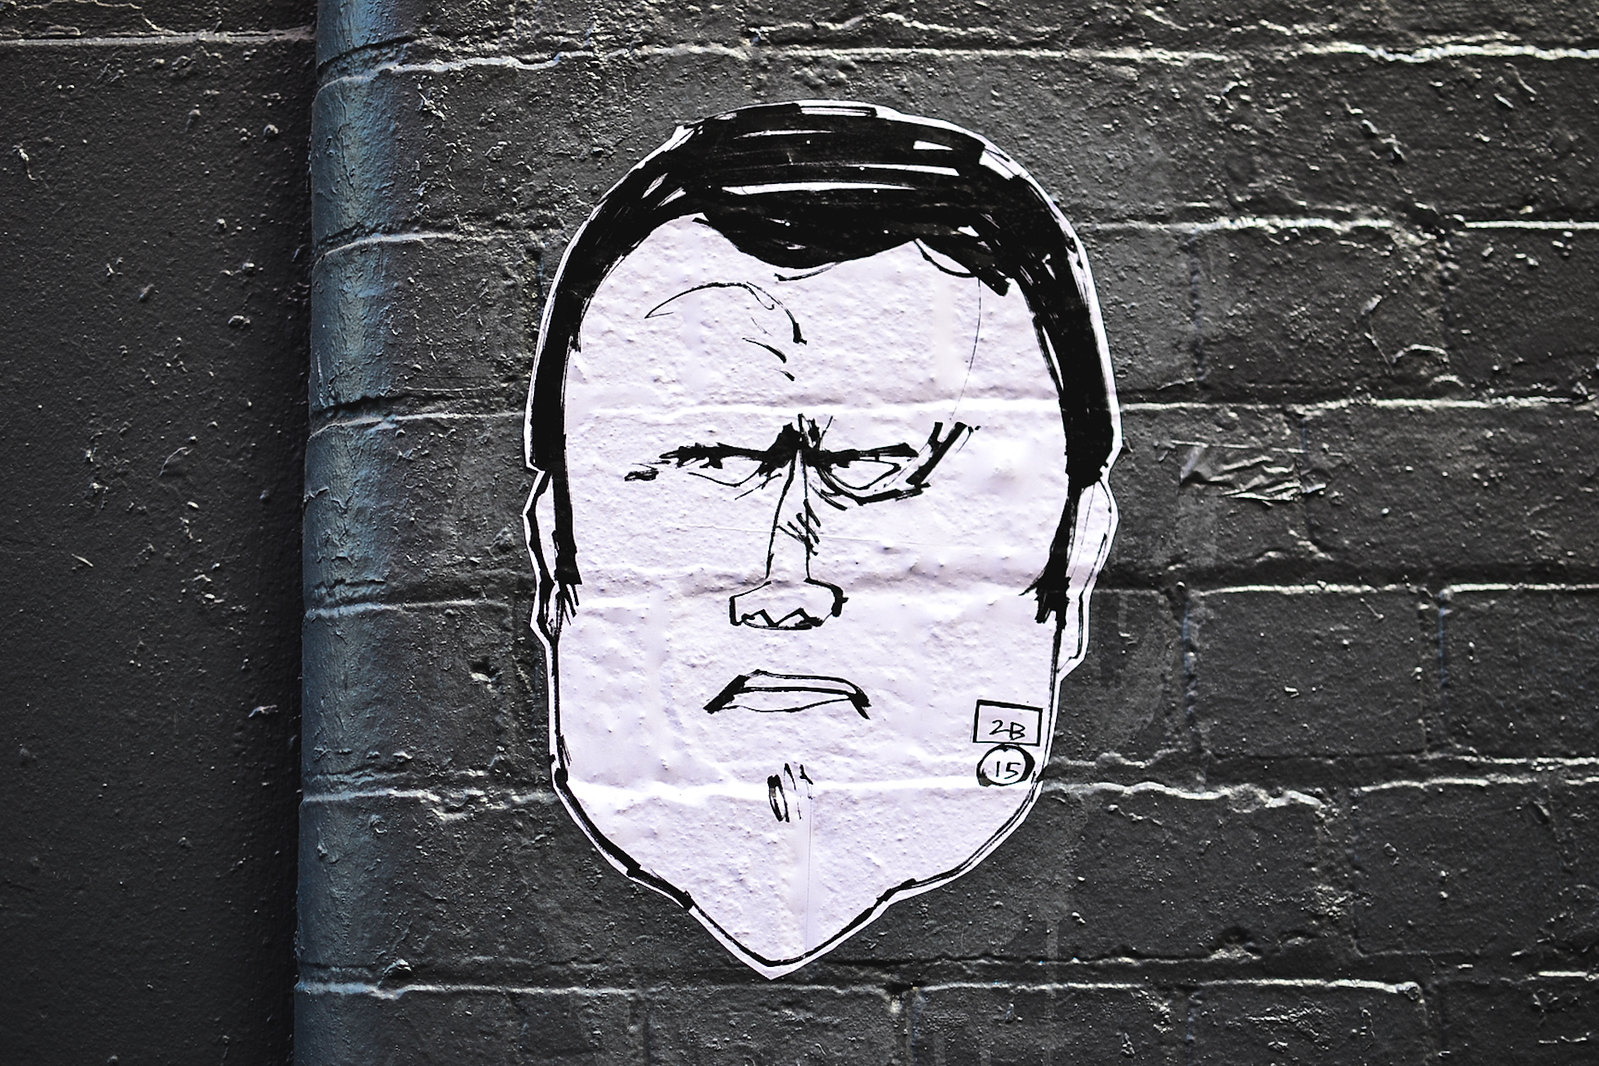 Melbourne Drewery Lane Street Art 2015